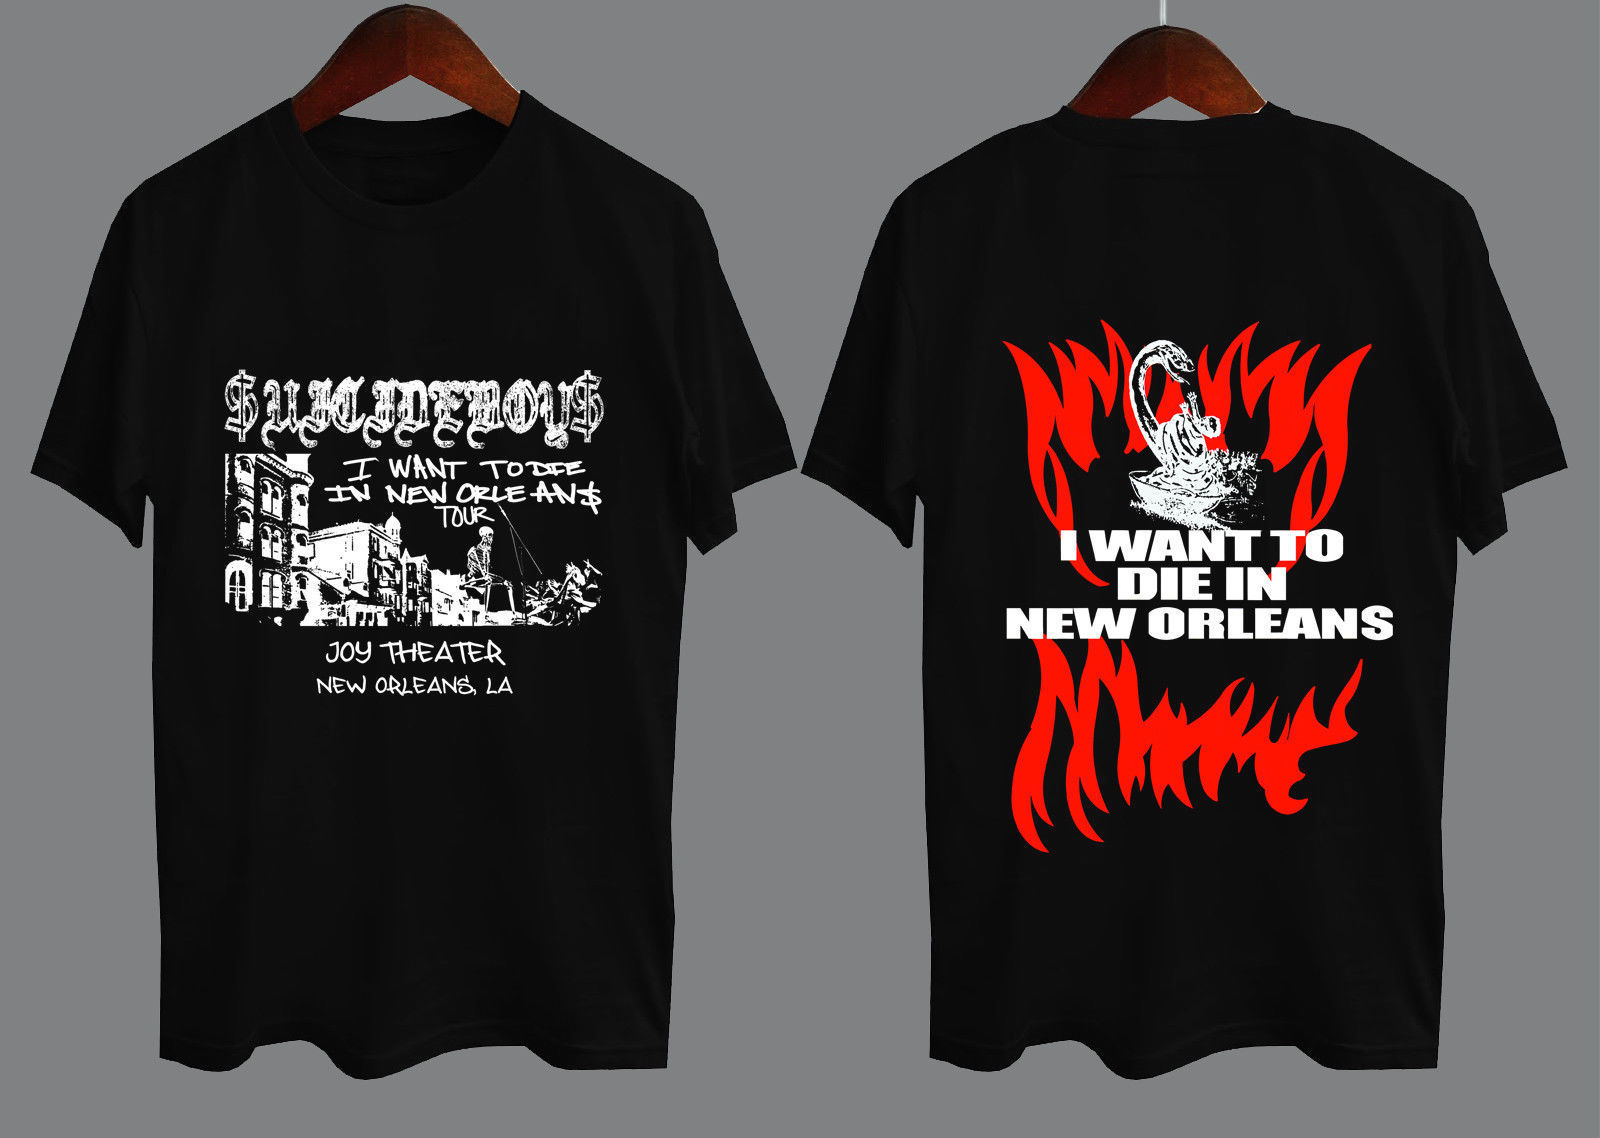 SUICIDEBOYS 2018 TOUR I WANT TO DIE IN NEW ORLEANS $UICIDEBOYS T-shirt Size S To 3XL Men'S High Quality Tees Top Tee T Shirt